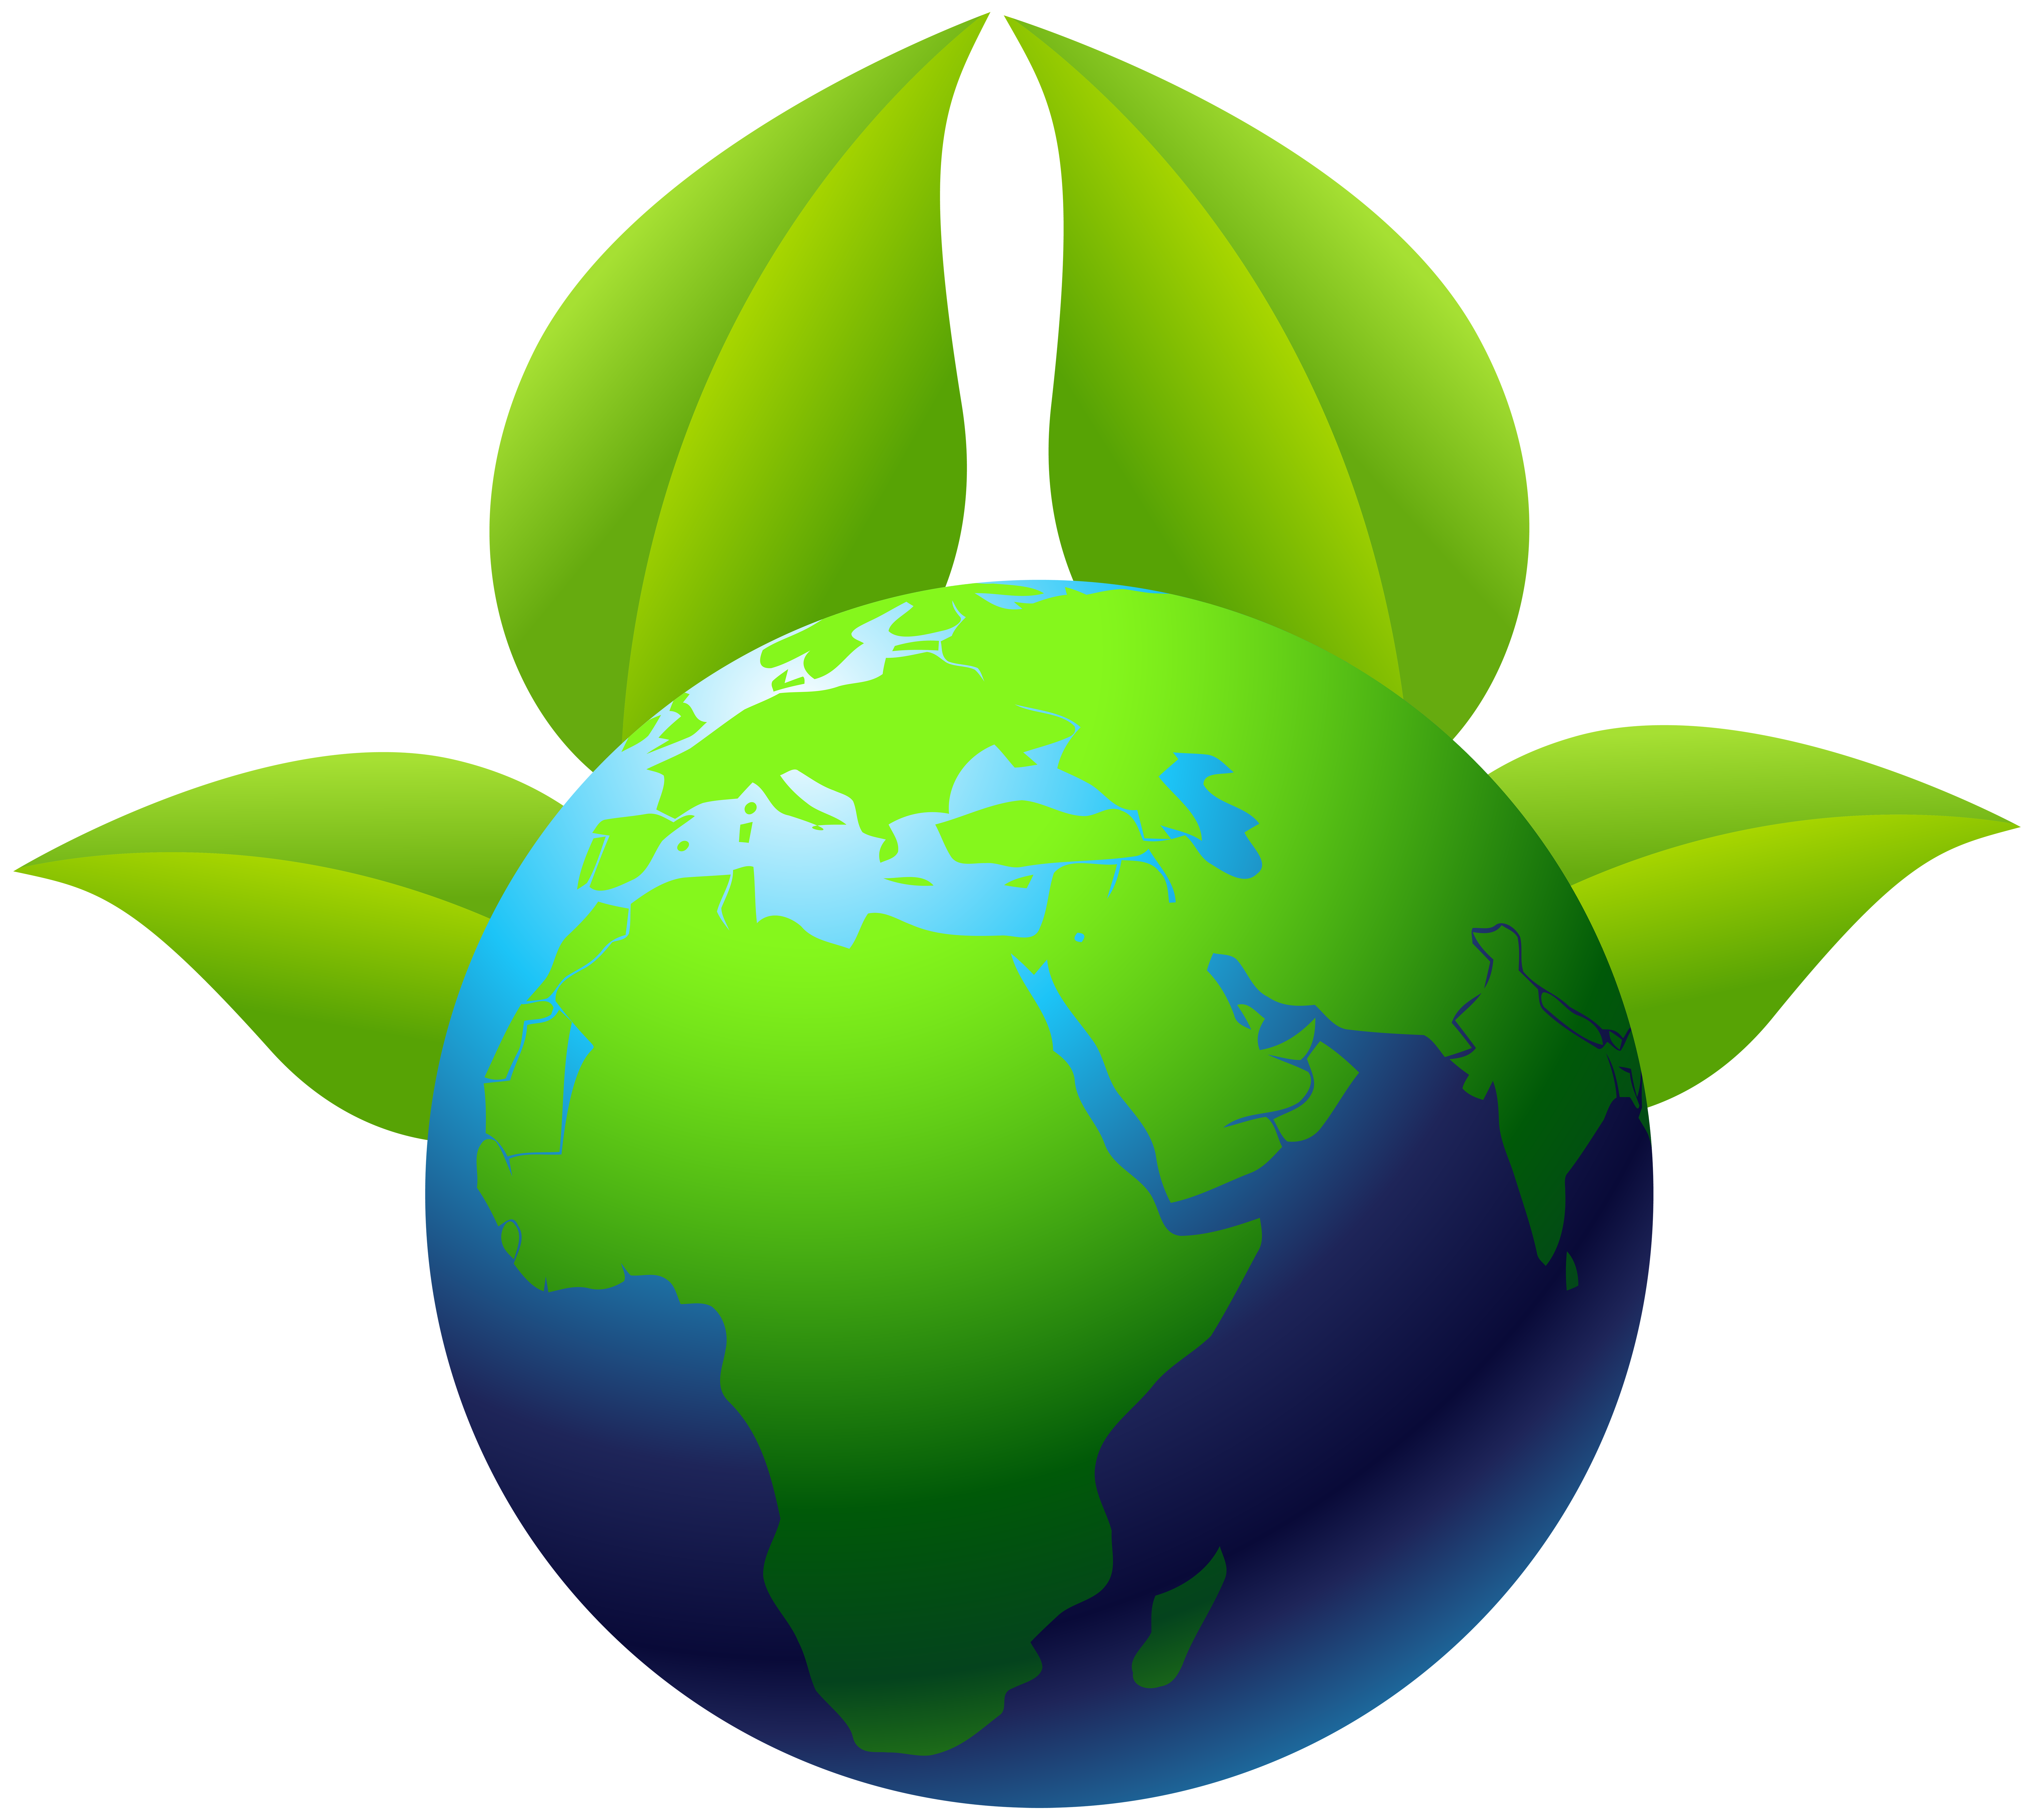 Clipart earth grey. With leaves png clip